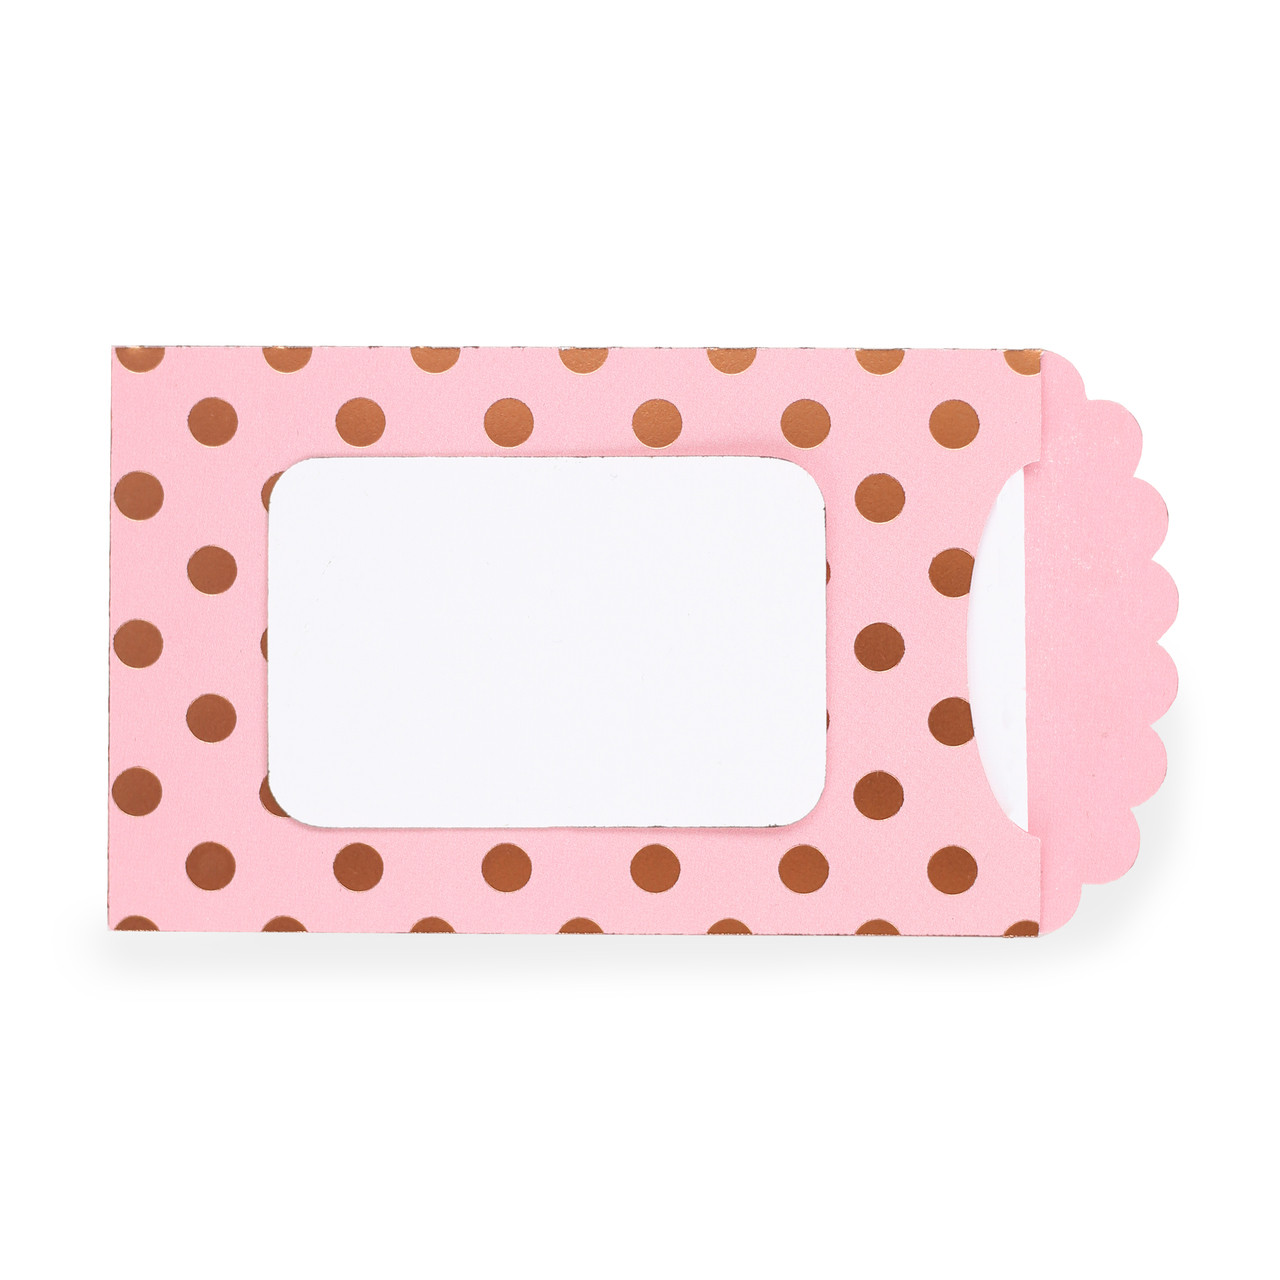 Gift Card Holder Svg Cut File Snap Click Supply Co